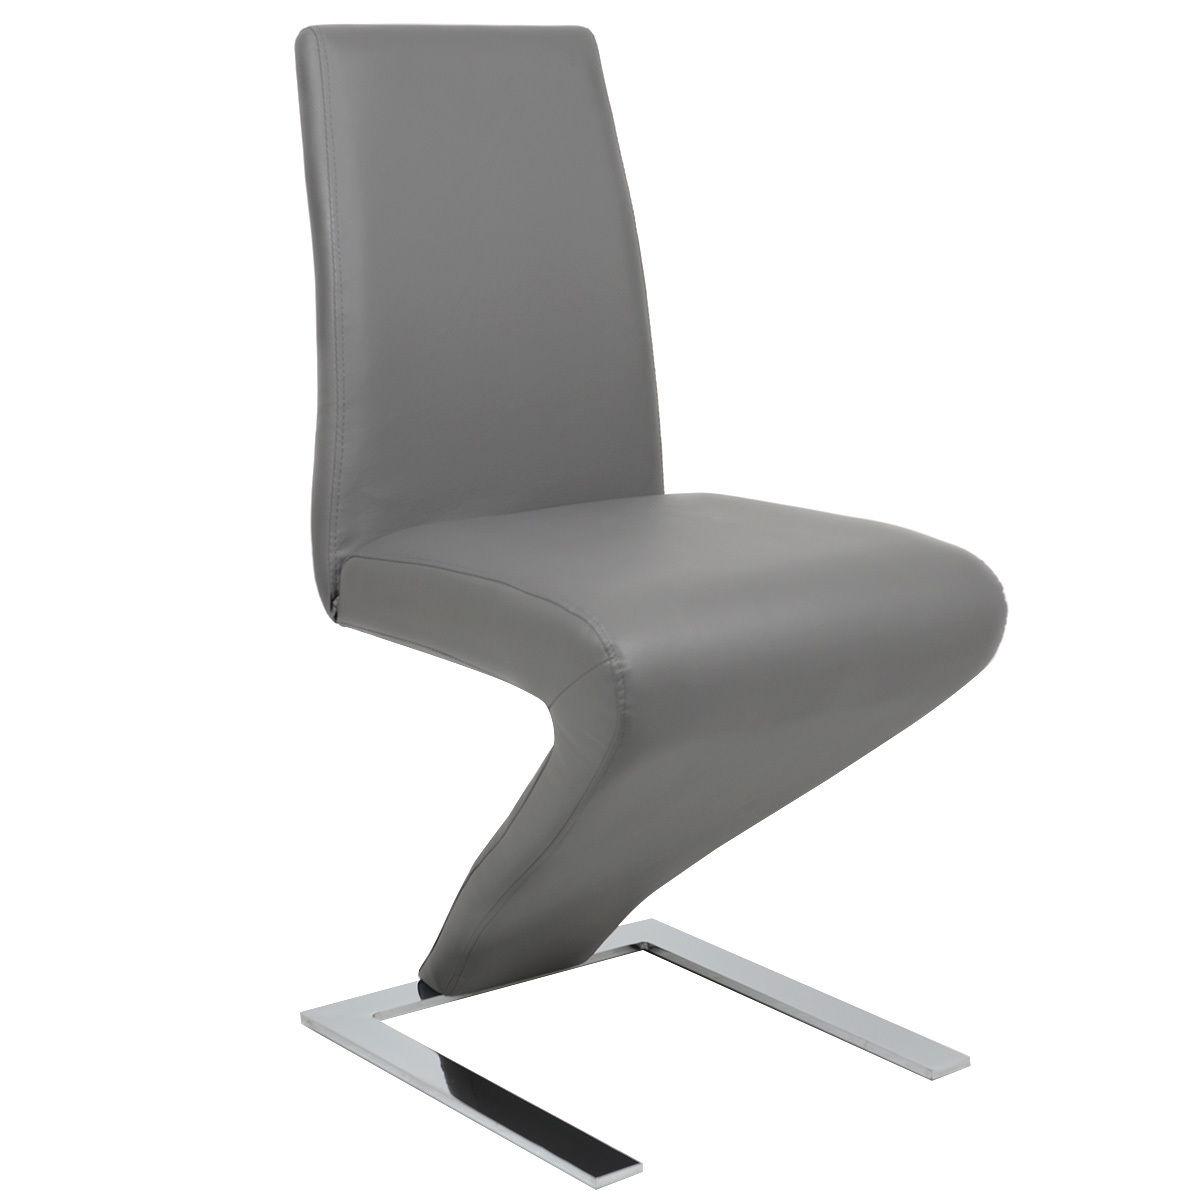 z shaped high chair revolving back goplus pu leather dining zigzag home room furniture gray